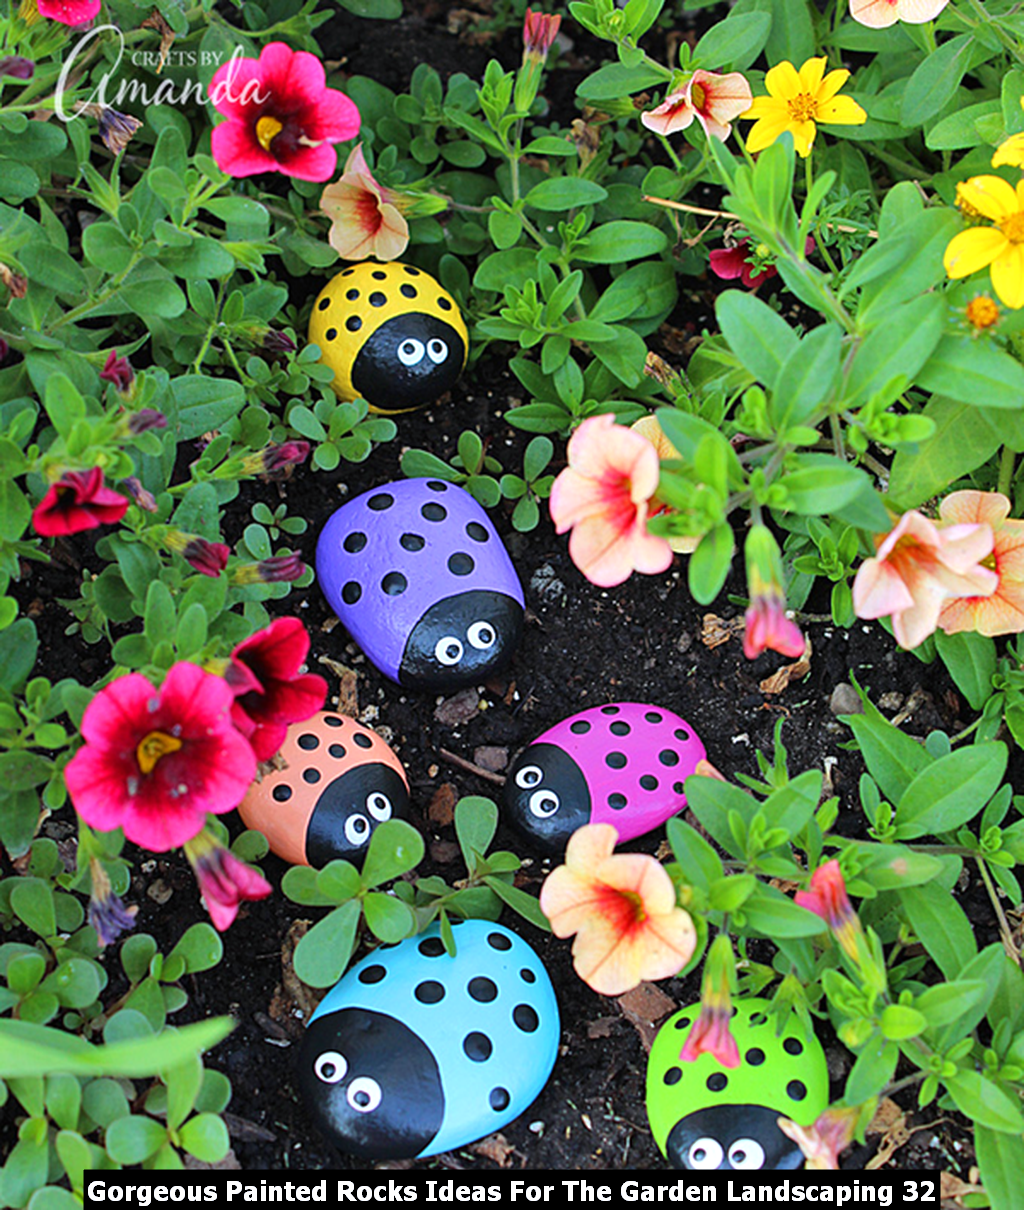 Gorgeous Painted Rocks Ideas For The Garden Landscaping 32